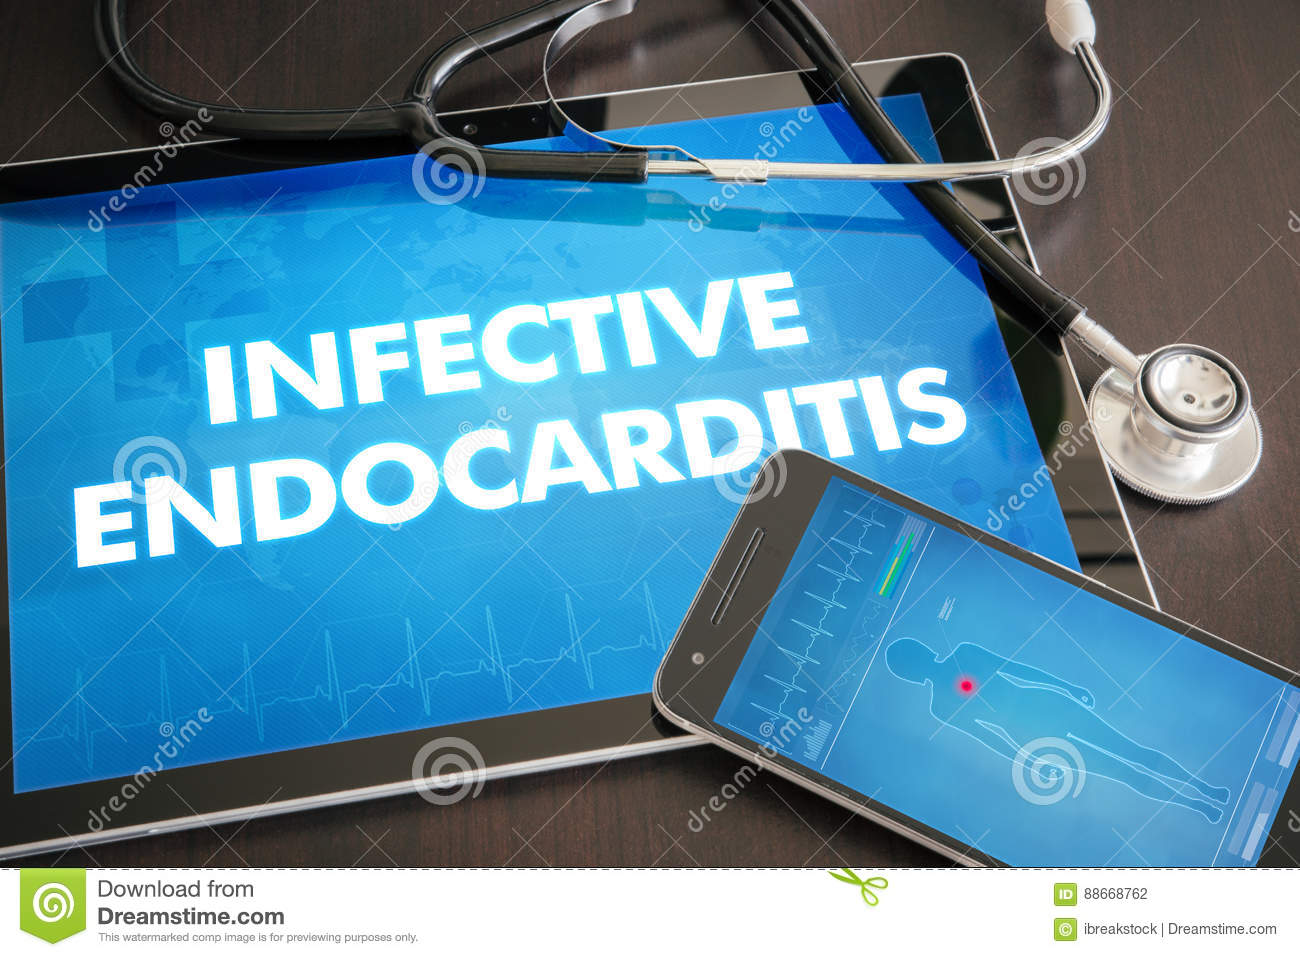 Infective endocarditis (heart disorder) diagnosis medical concept on tablet screen with stethoscope